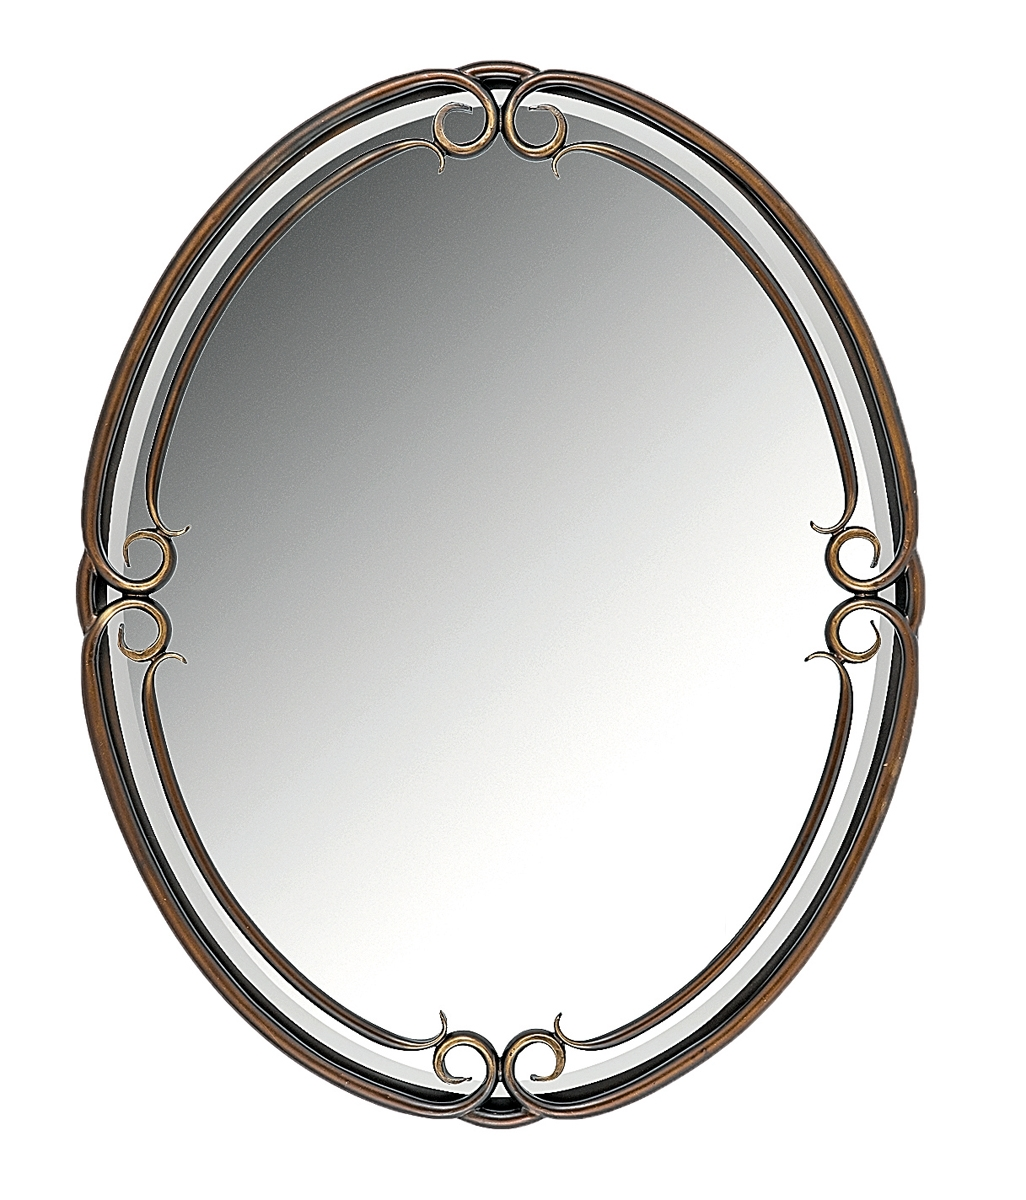 Quoizel Large Oval Duchess 40 High Wall Mirror